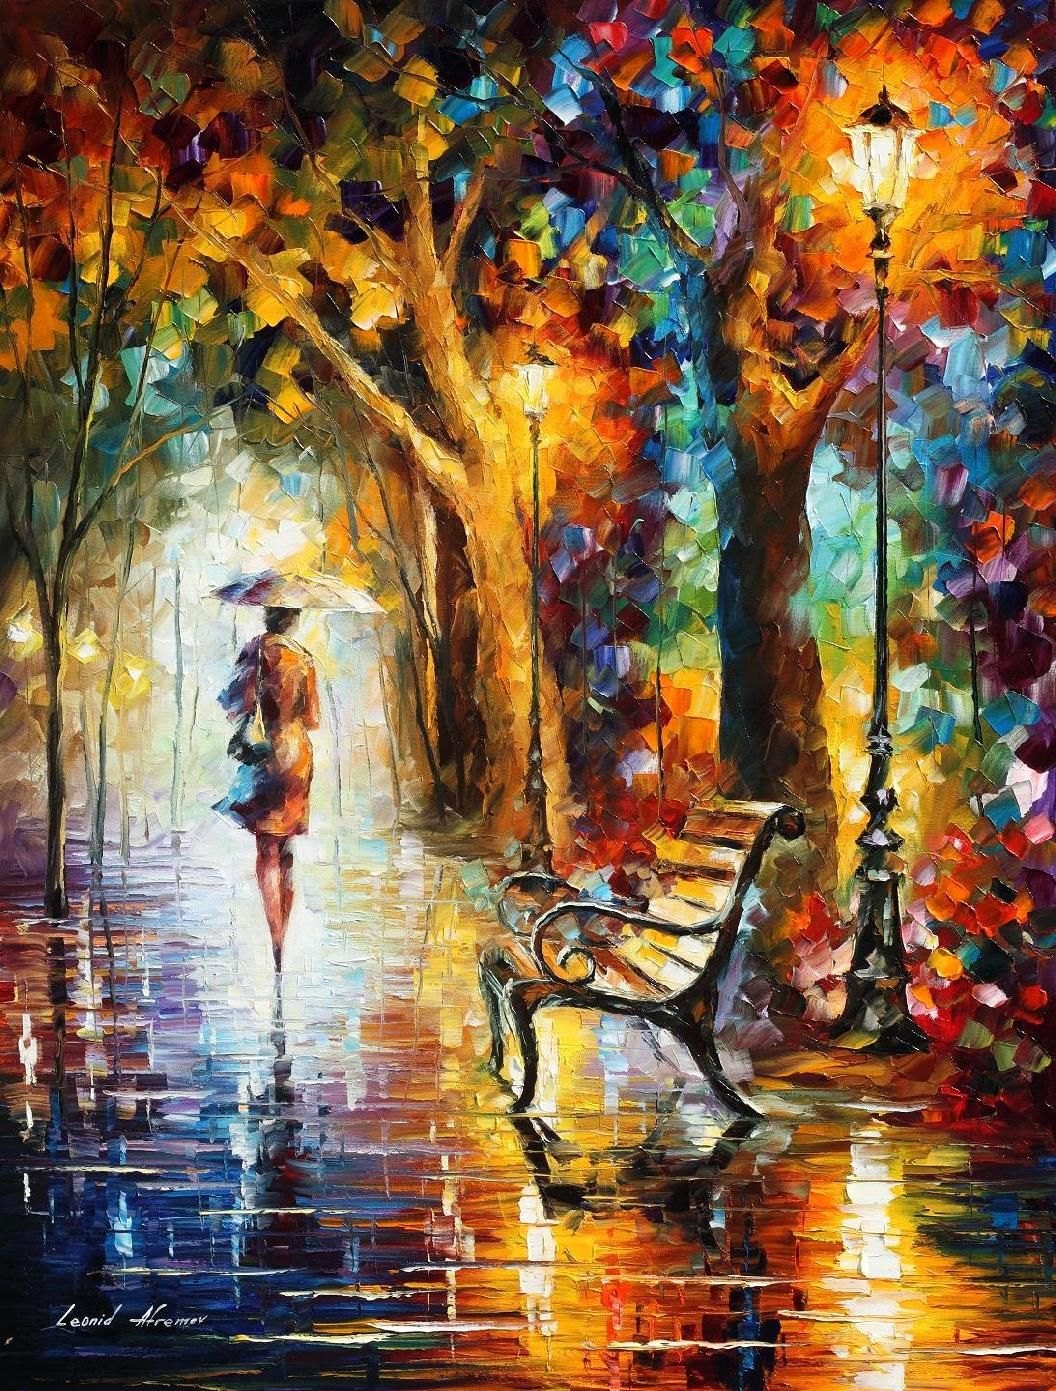 Only 10h left! THE END OF PATIENCE - limited edition giclee by L.Afremov. First bid $59 http://www.ebay.com/itm/131882025426